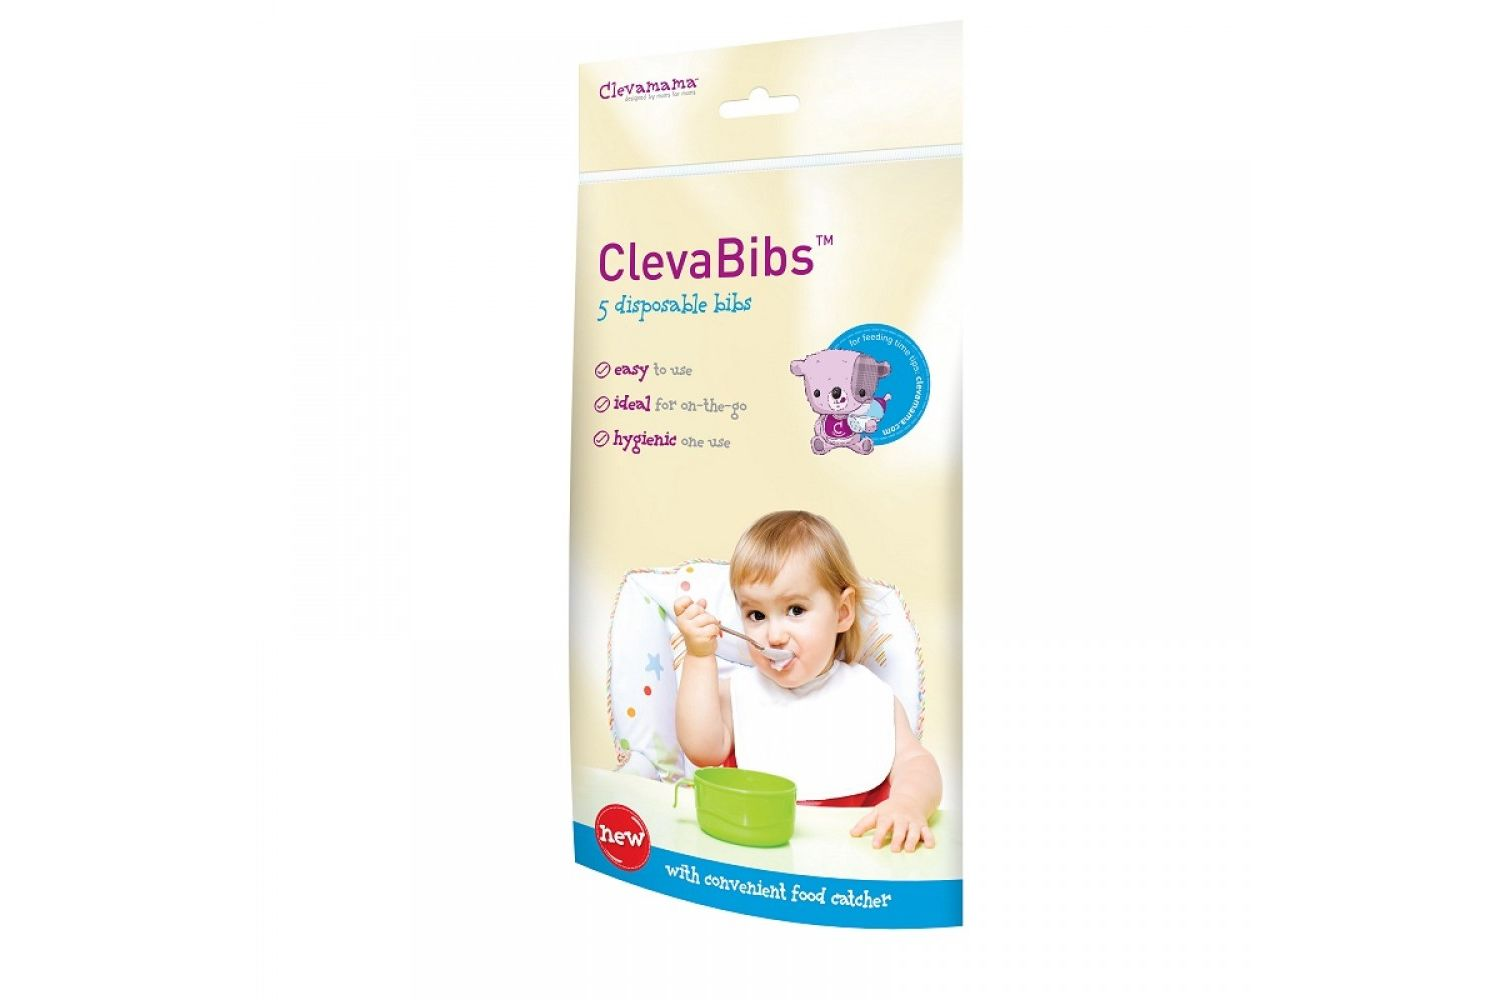 Clevamama Clevabibs pack of 5 disposal bibs